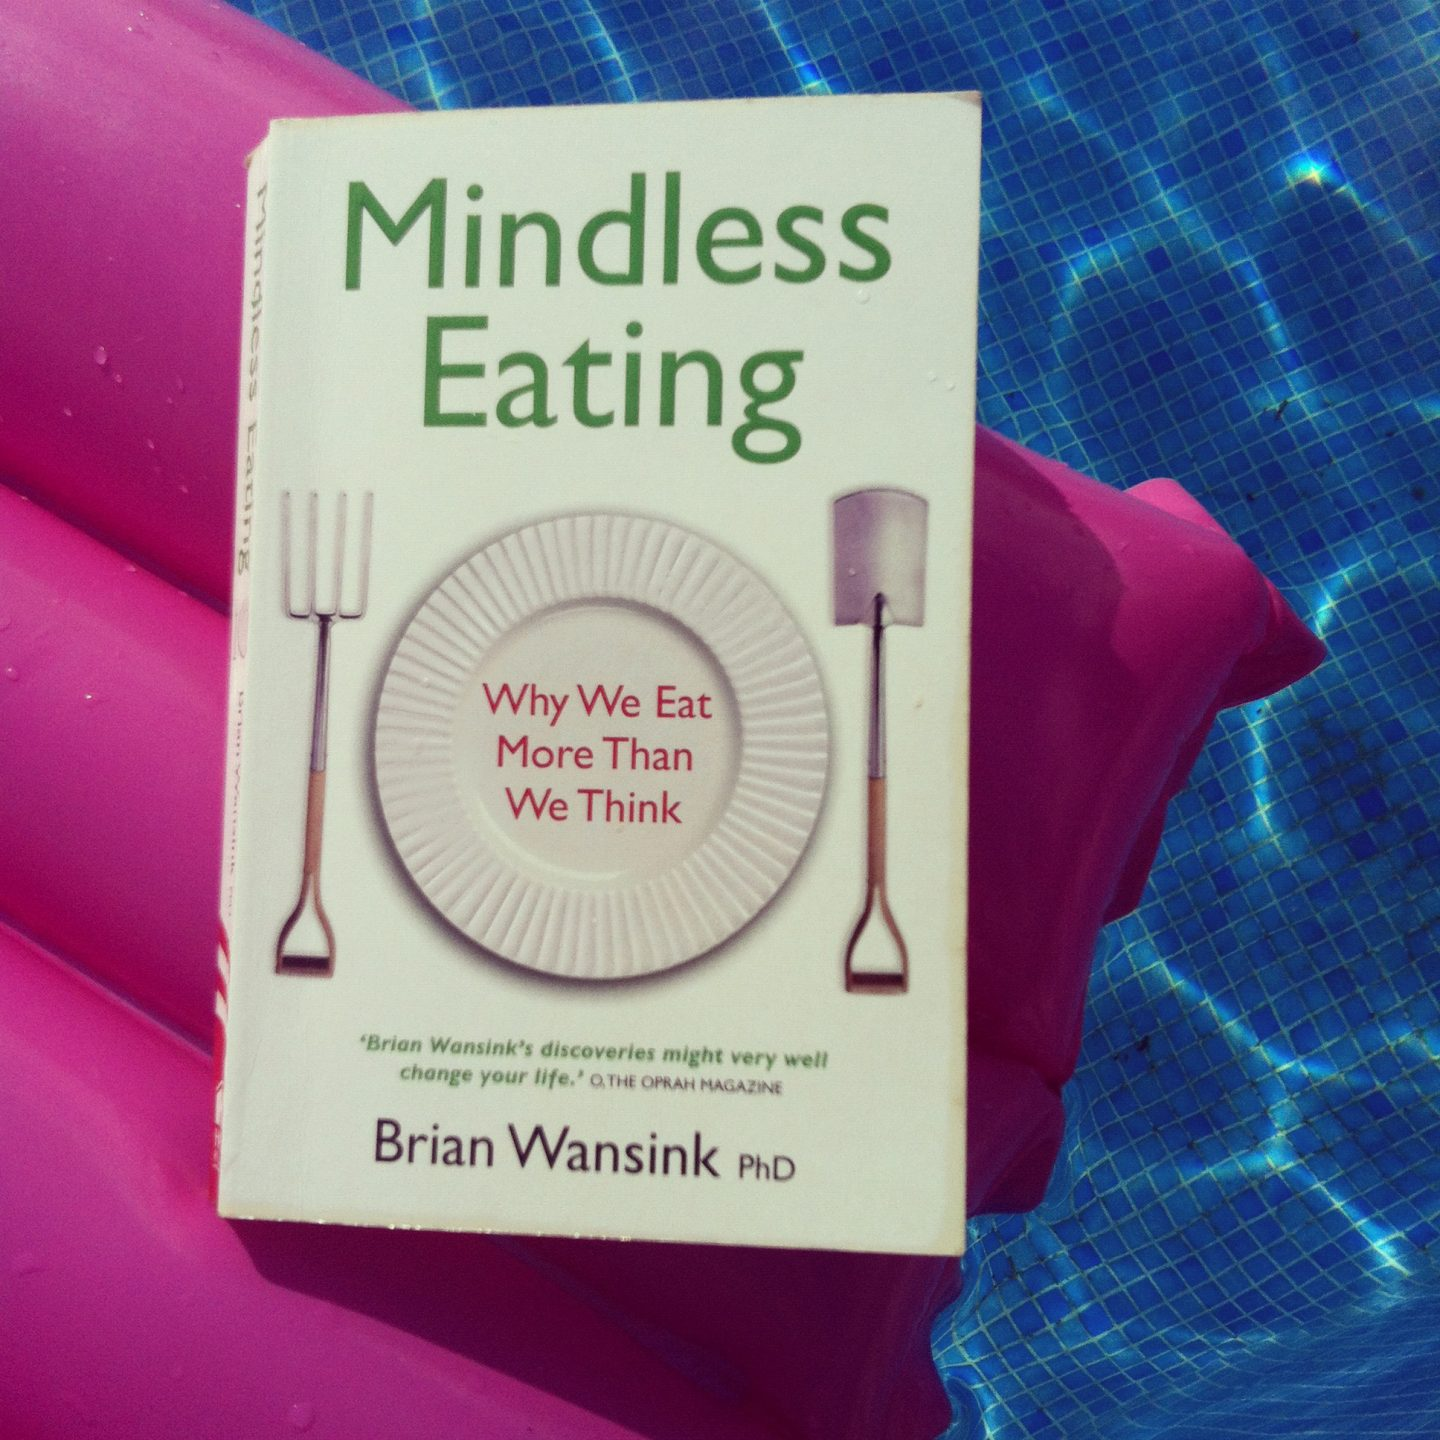 Book mindless eating